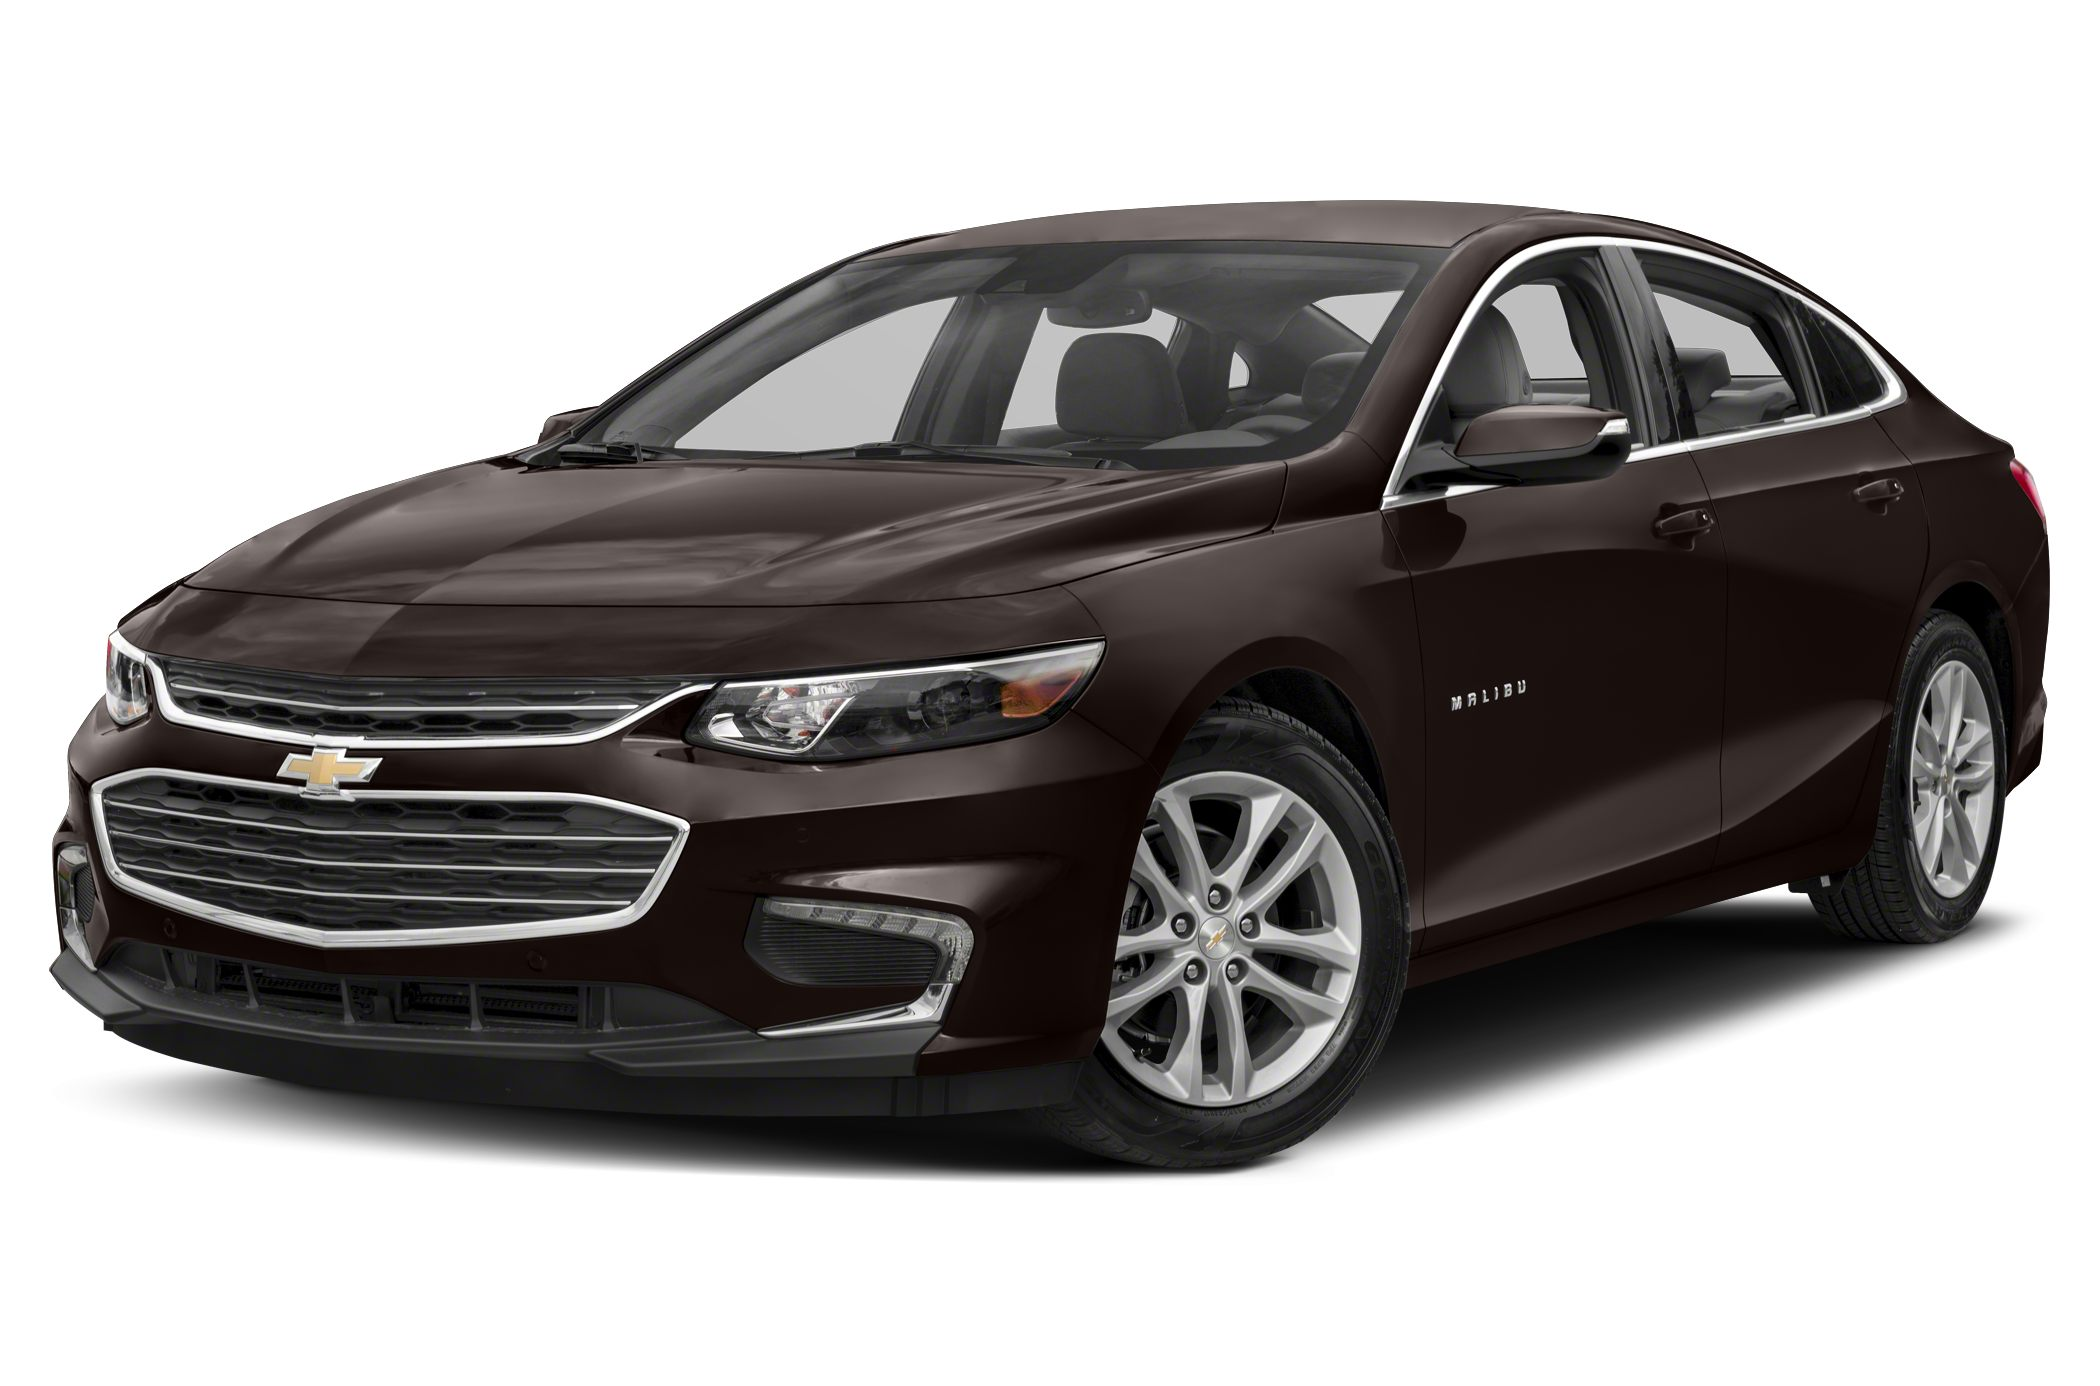 2016 chevrolet malibu hybrid quick spin w video autoblog. Black Bedroom Furniture Sets. Home Design Ideas